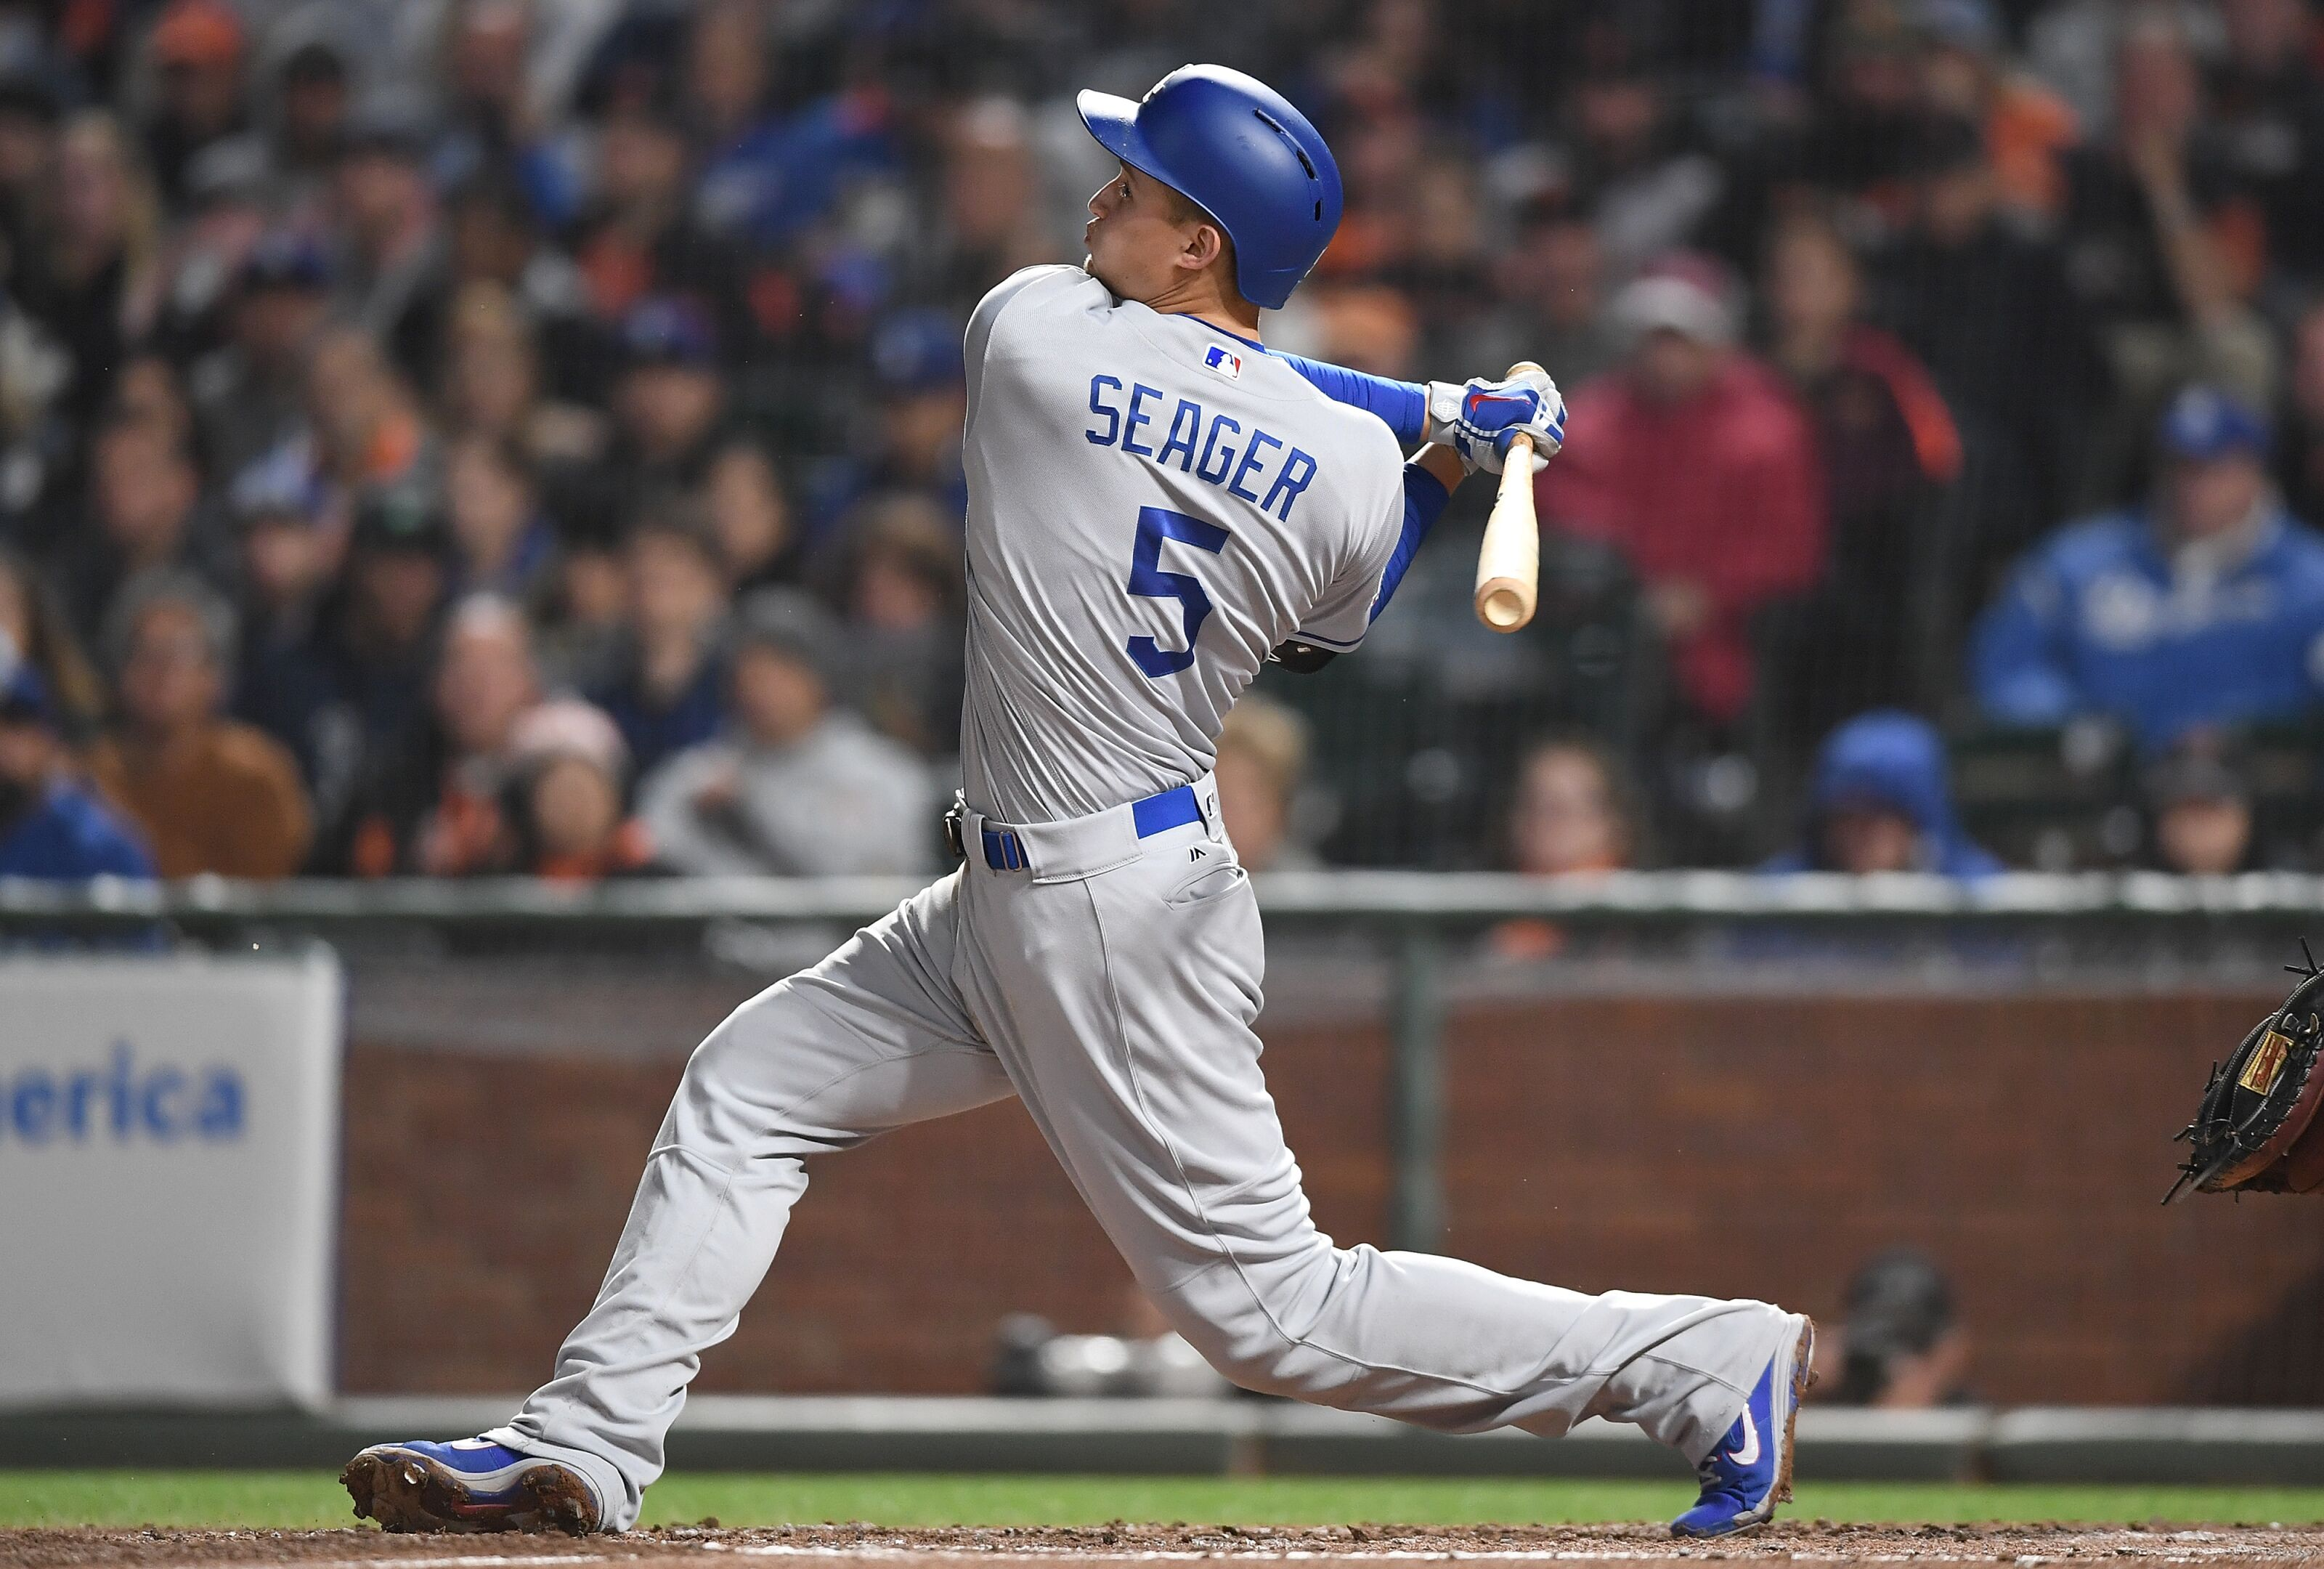 Corey Seager can be placed high on your 2019 fantasy draft board